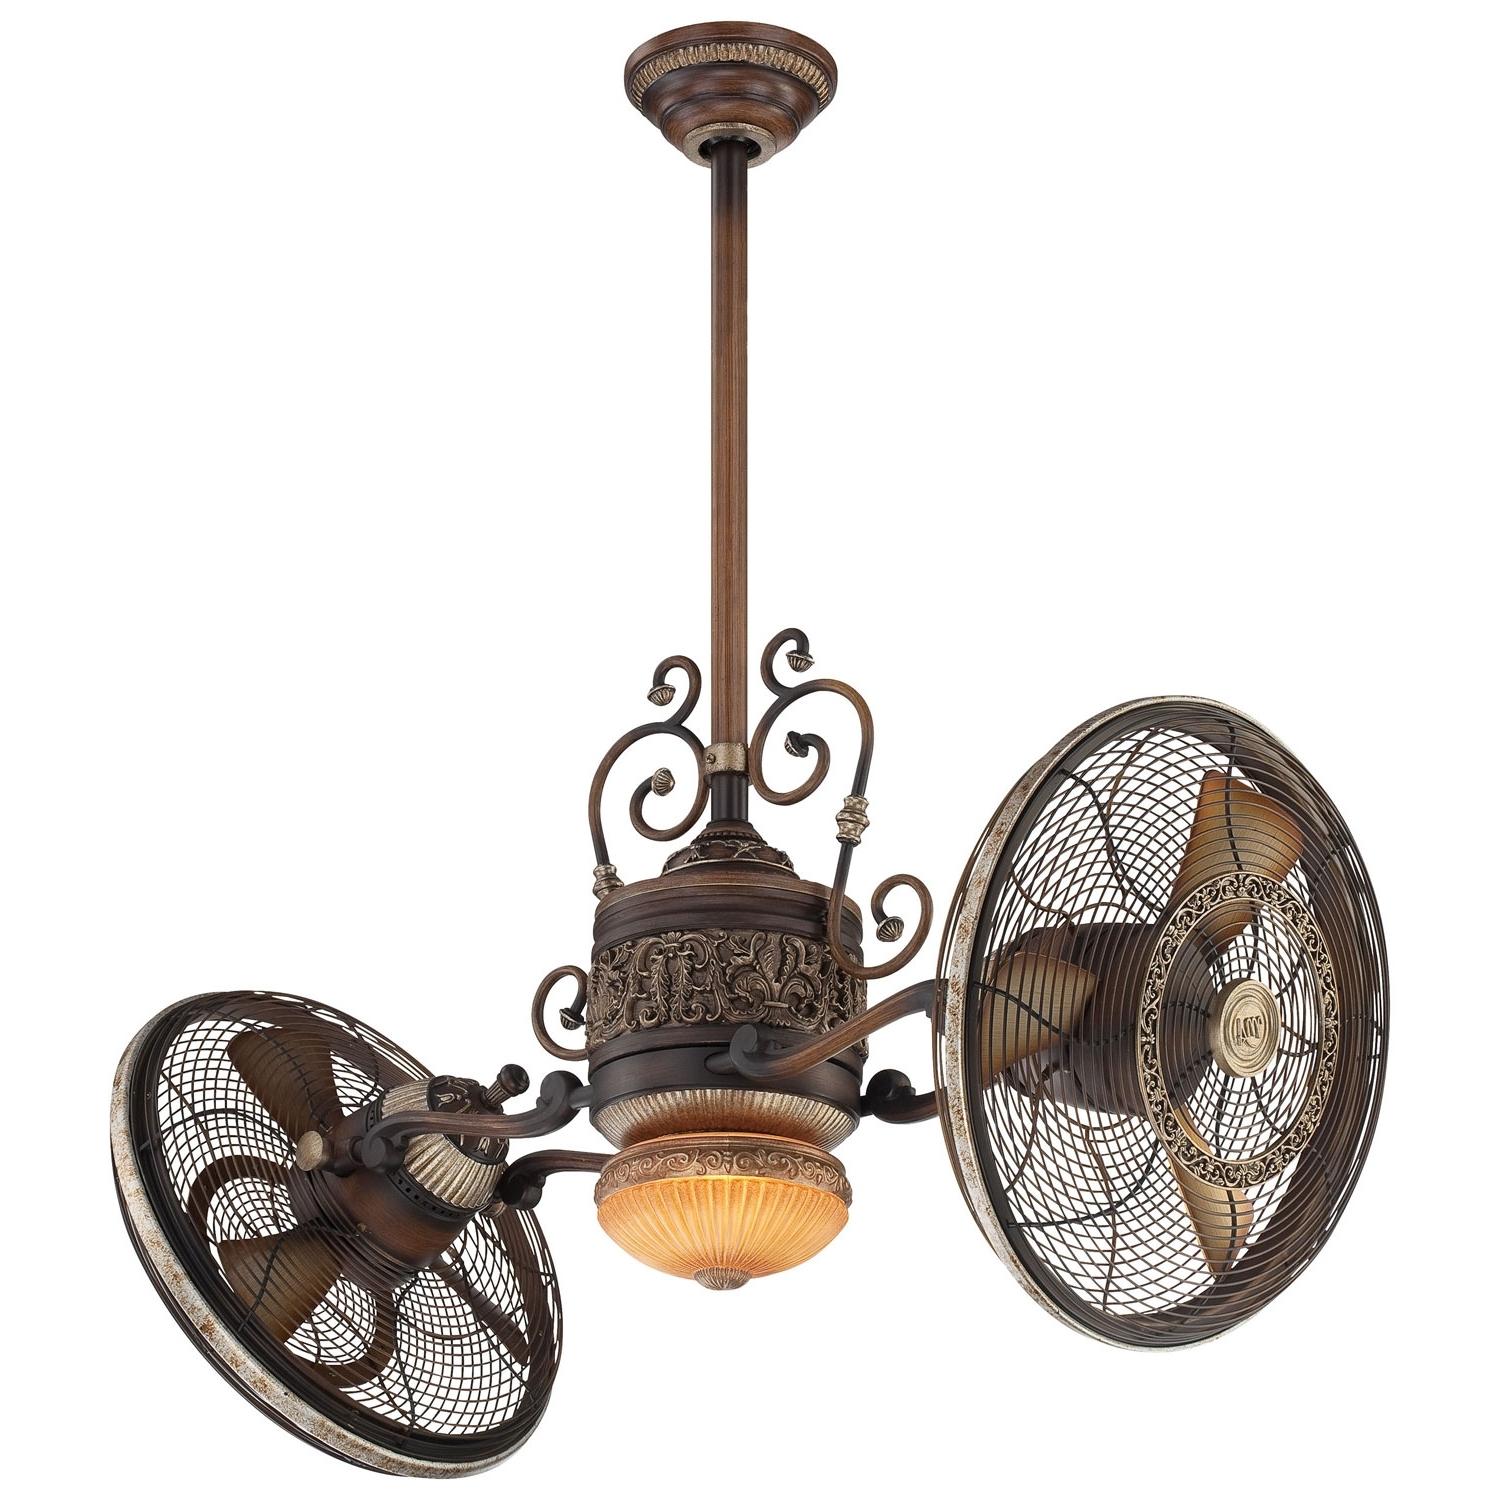 Minka Aire 42 Inch Traditional Gyro Belcaro Walnut Ceiling Fan F502 Pertaining To Current Traditional Outdoor Ceiling Fans (Gallery 11 of 20)